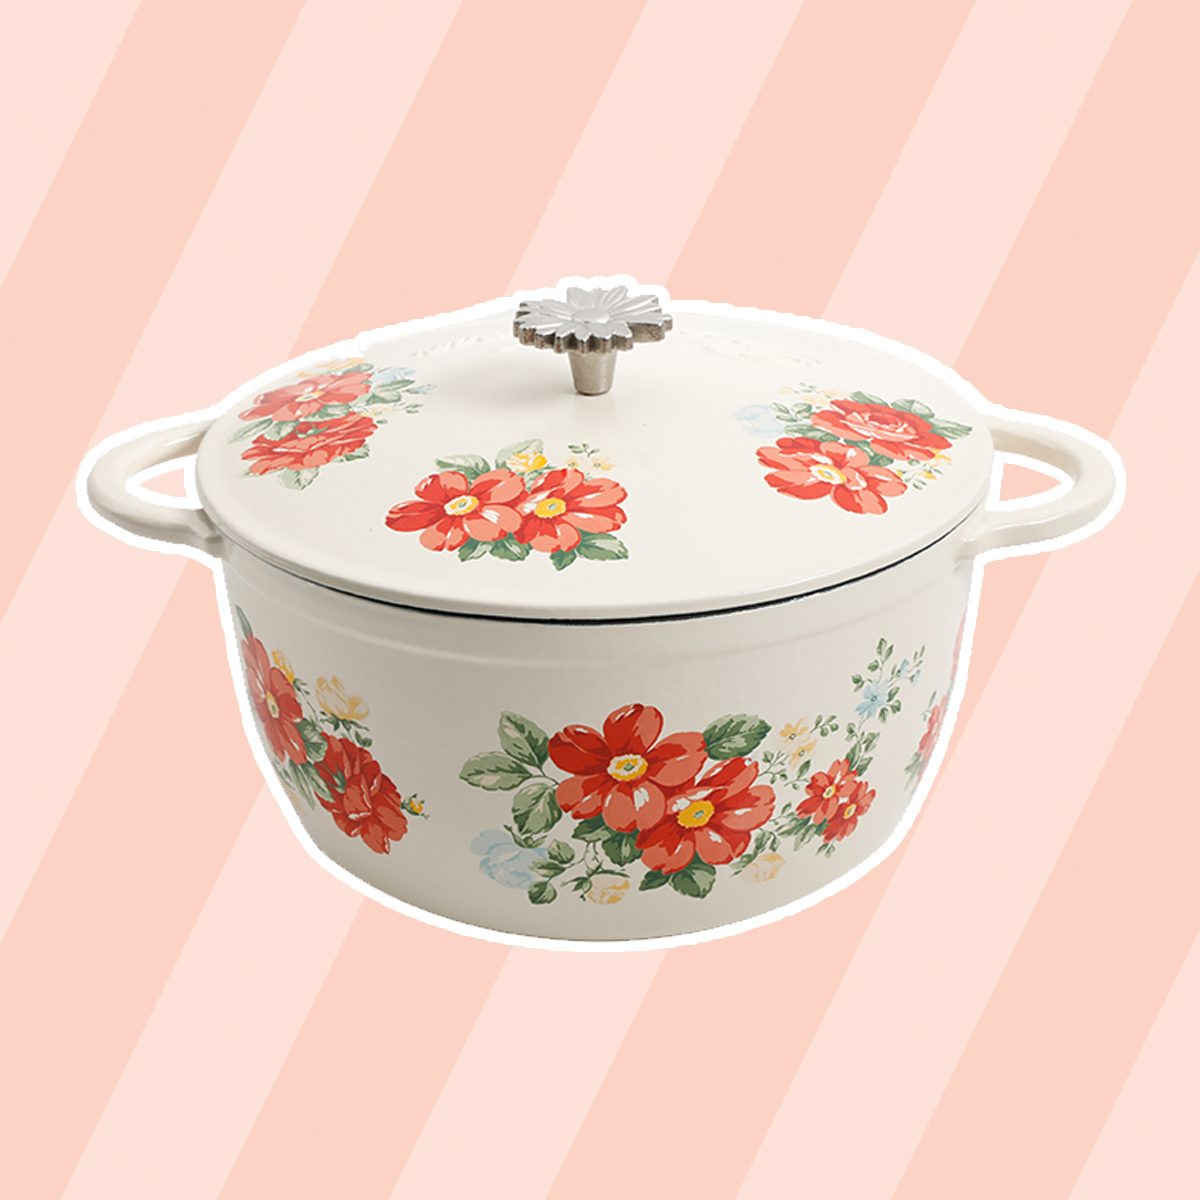 The Pioneer Woman Vintage Floral 5-Quart Dutch Oven